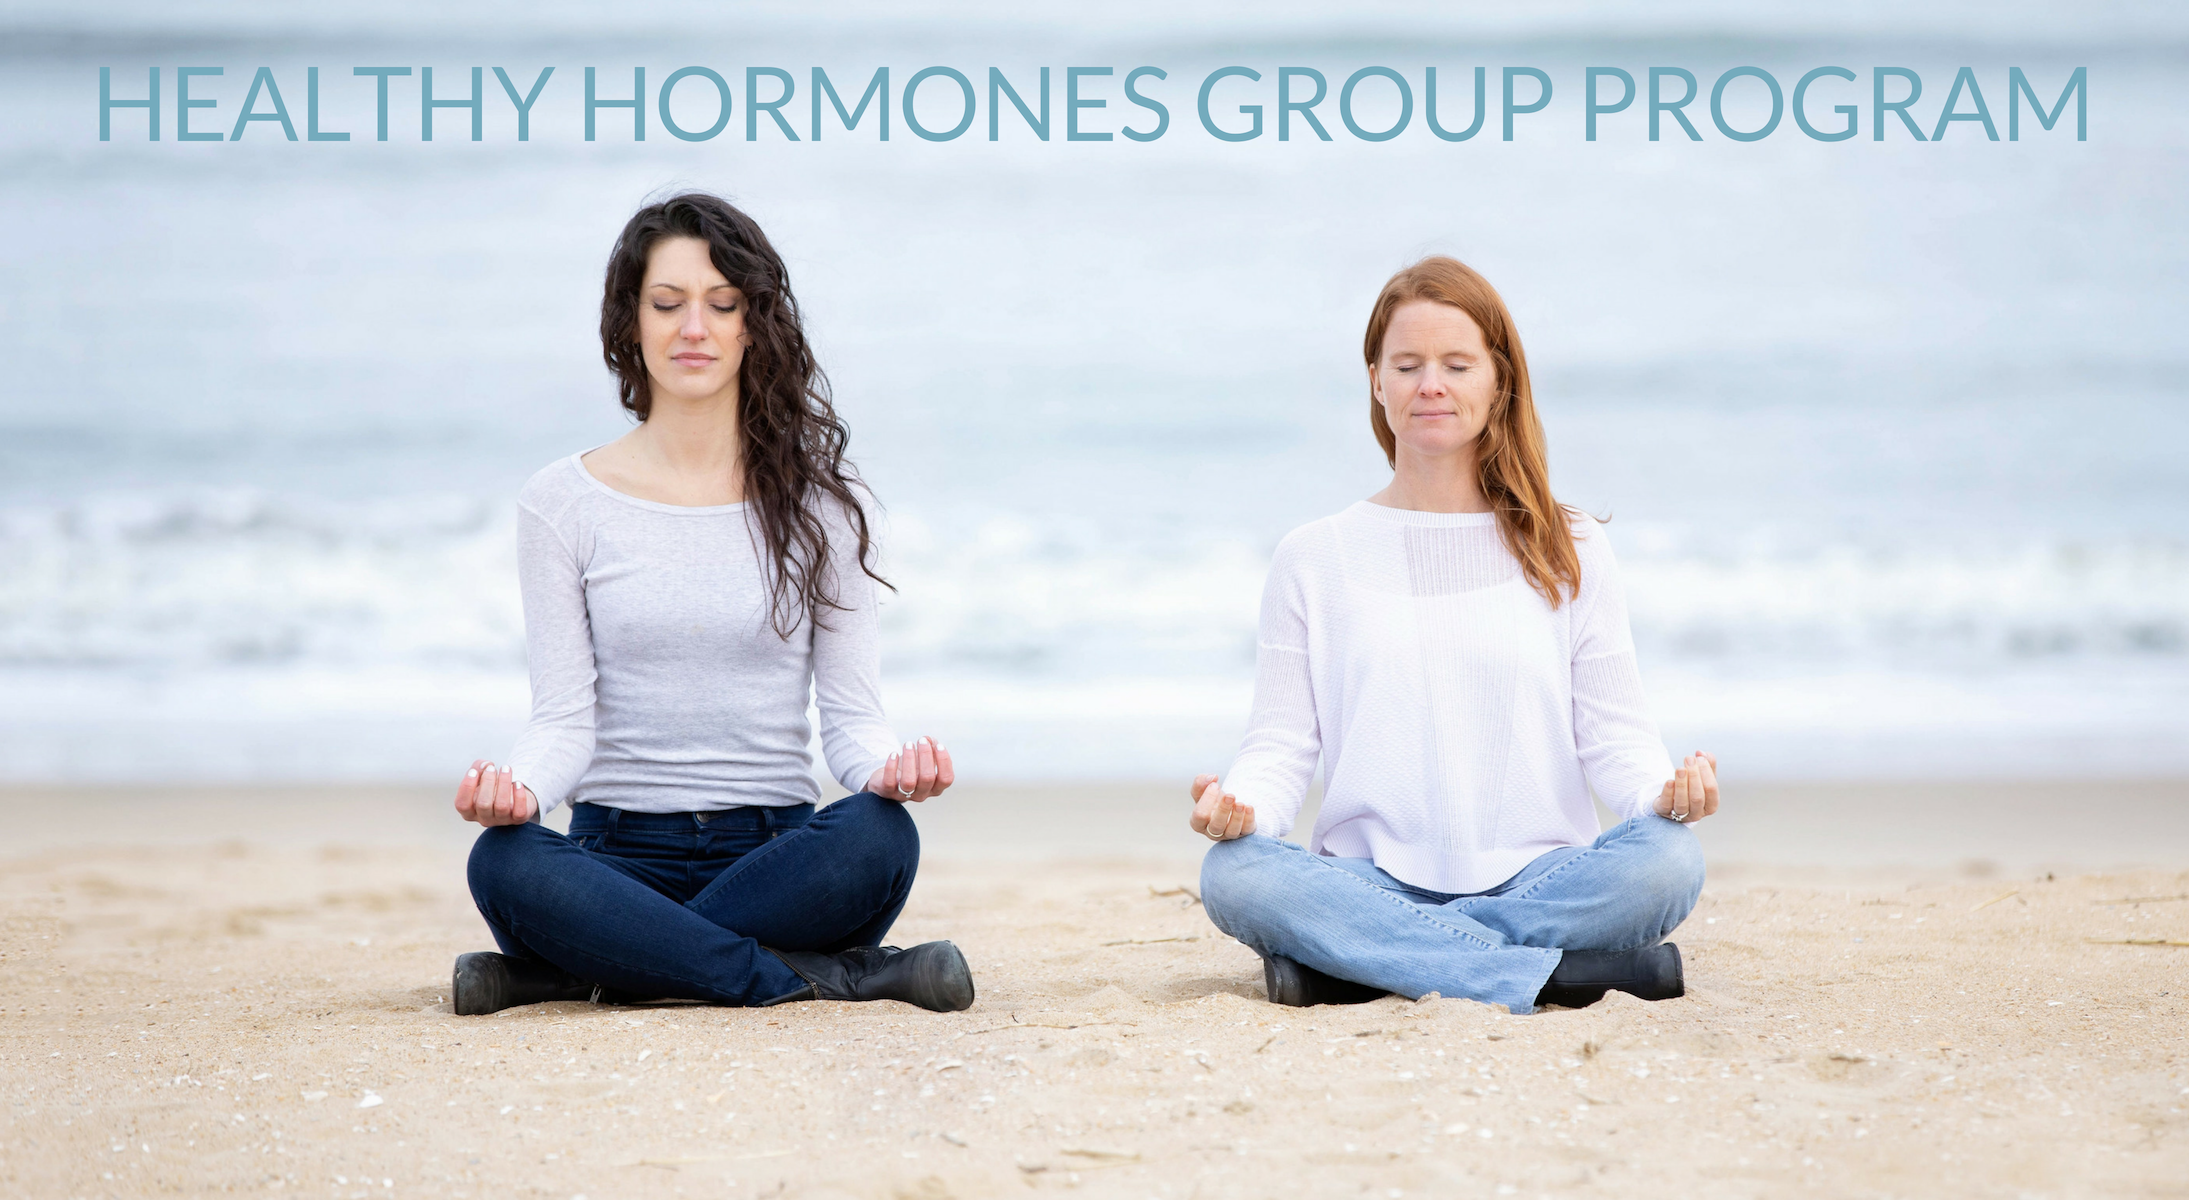 Healthy Hormones Group Program with Megan Rand and Alex Golden